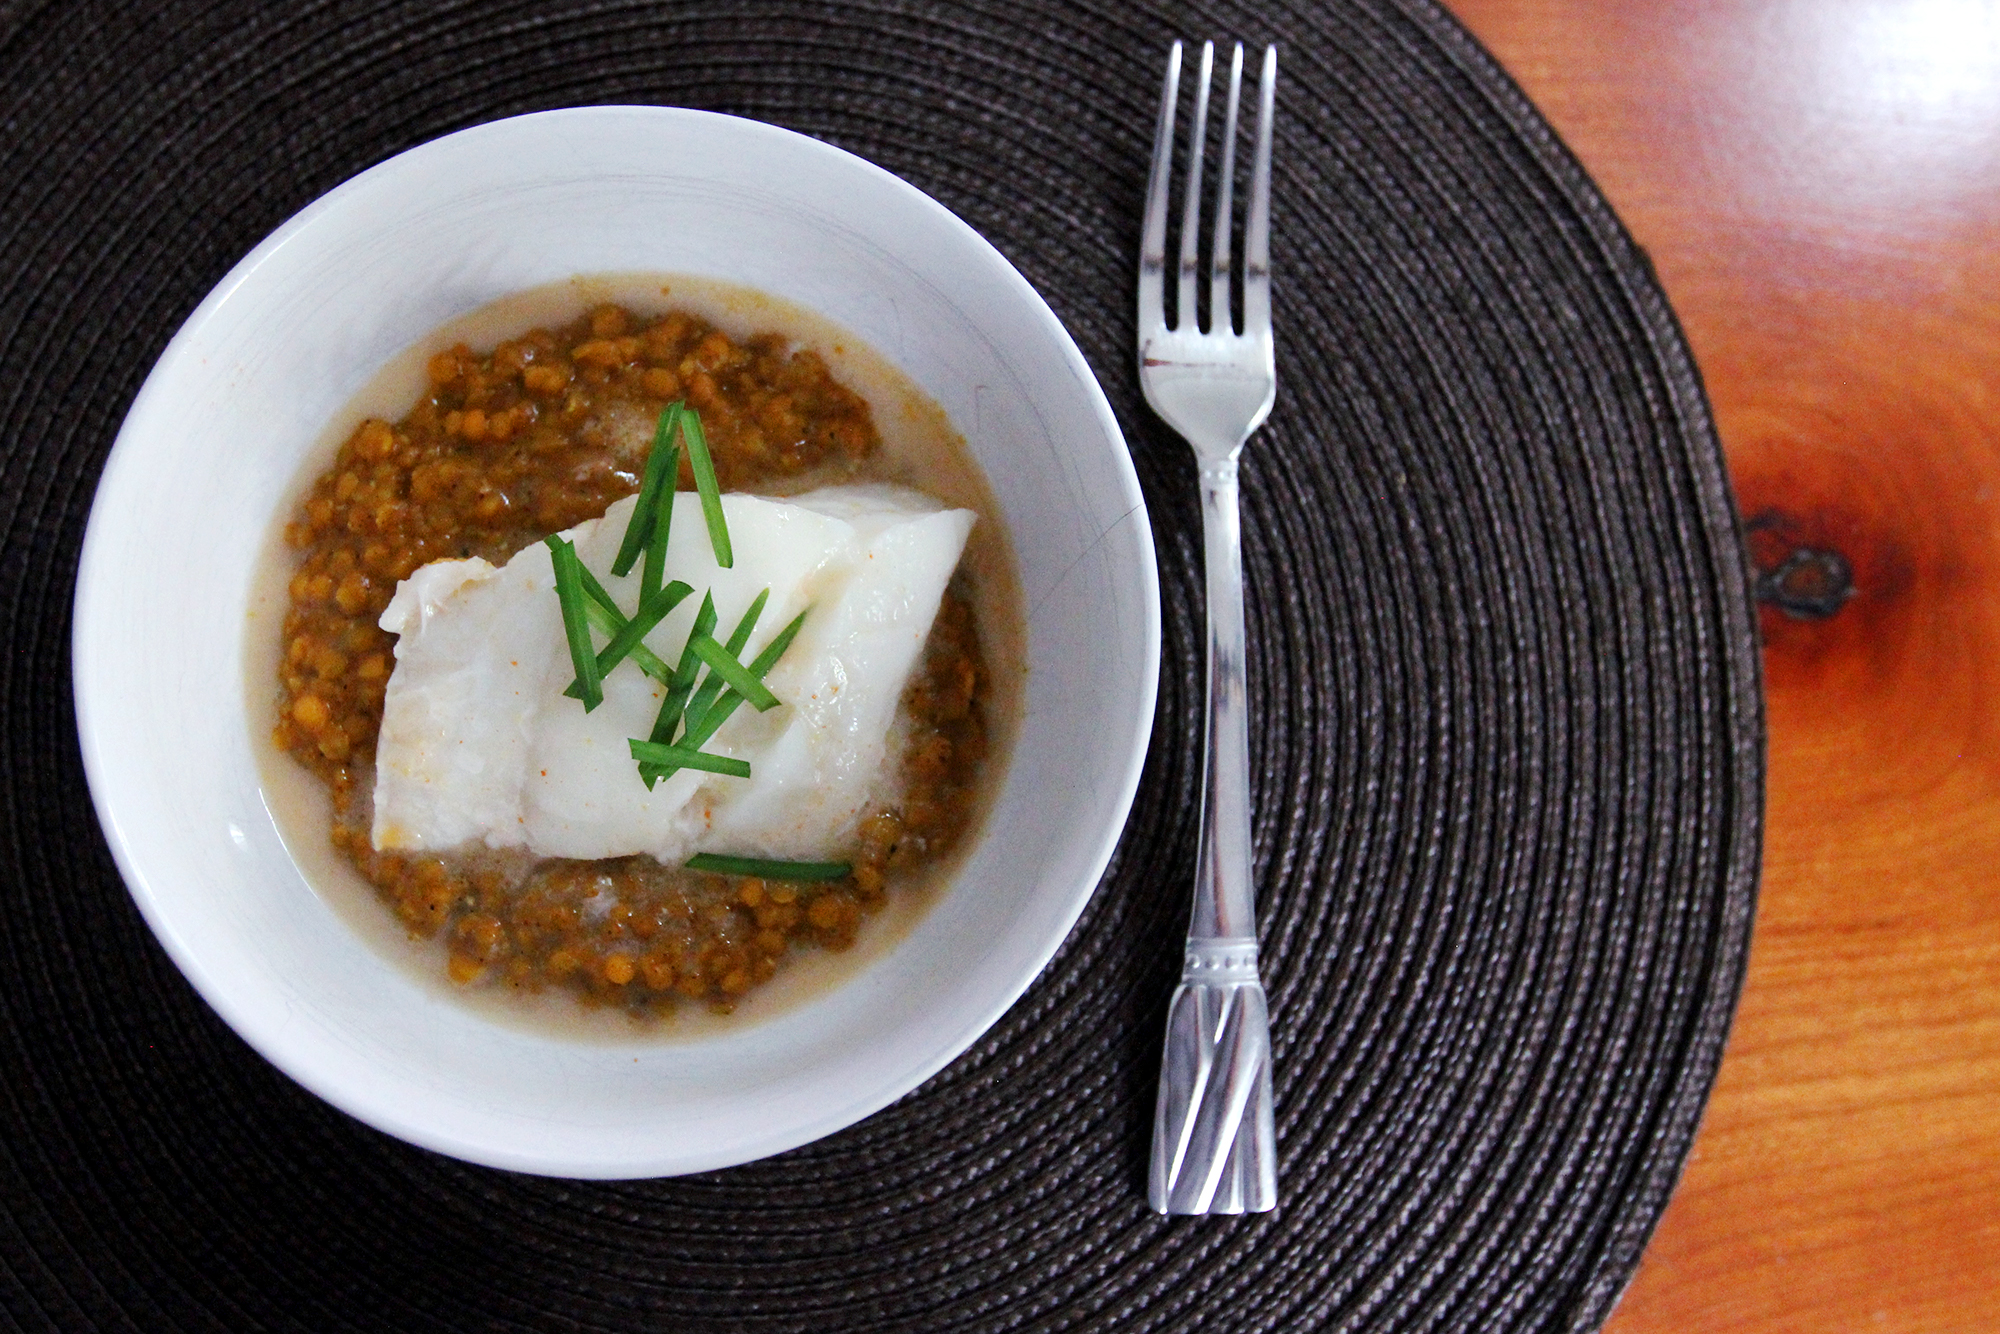 jo-torrijos-states-of-reverie-coconut-poached-cod-red-curry-lentils-recipe-5.jpg